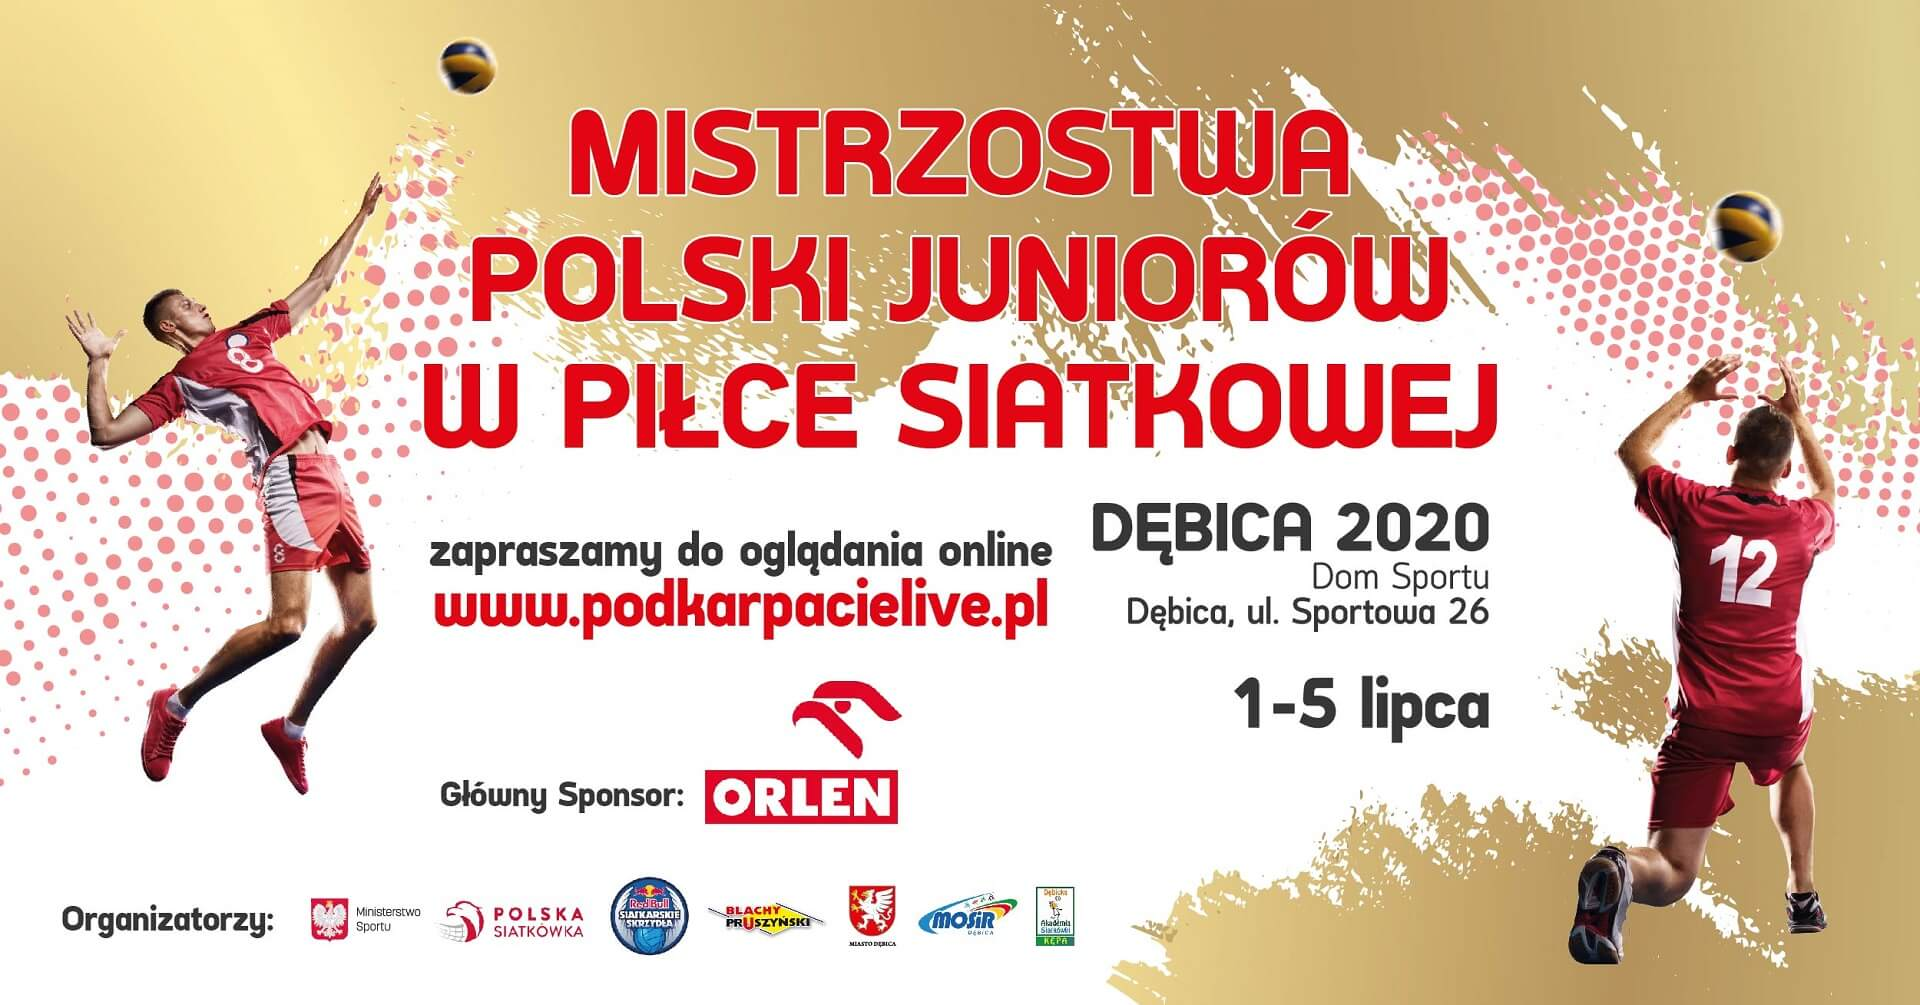 MP juniorów 2020 Dębica - program